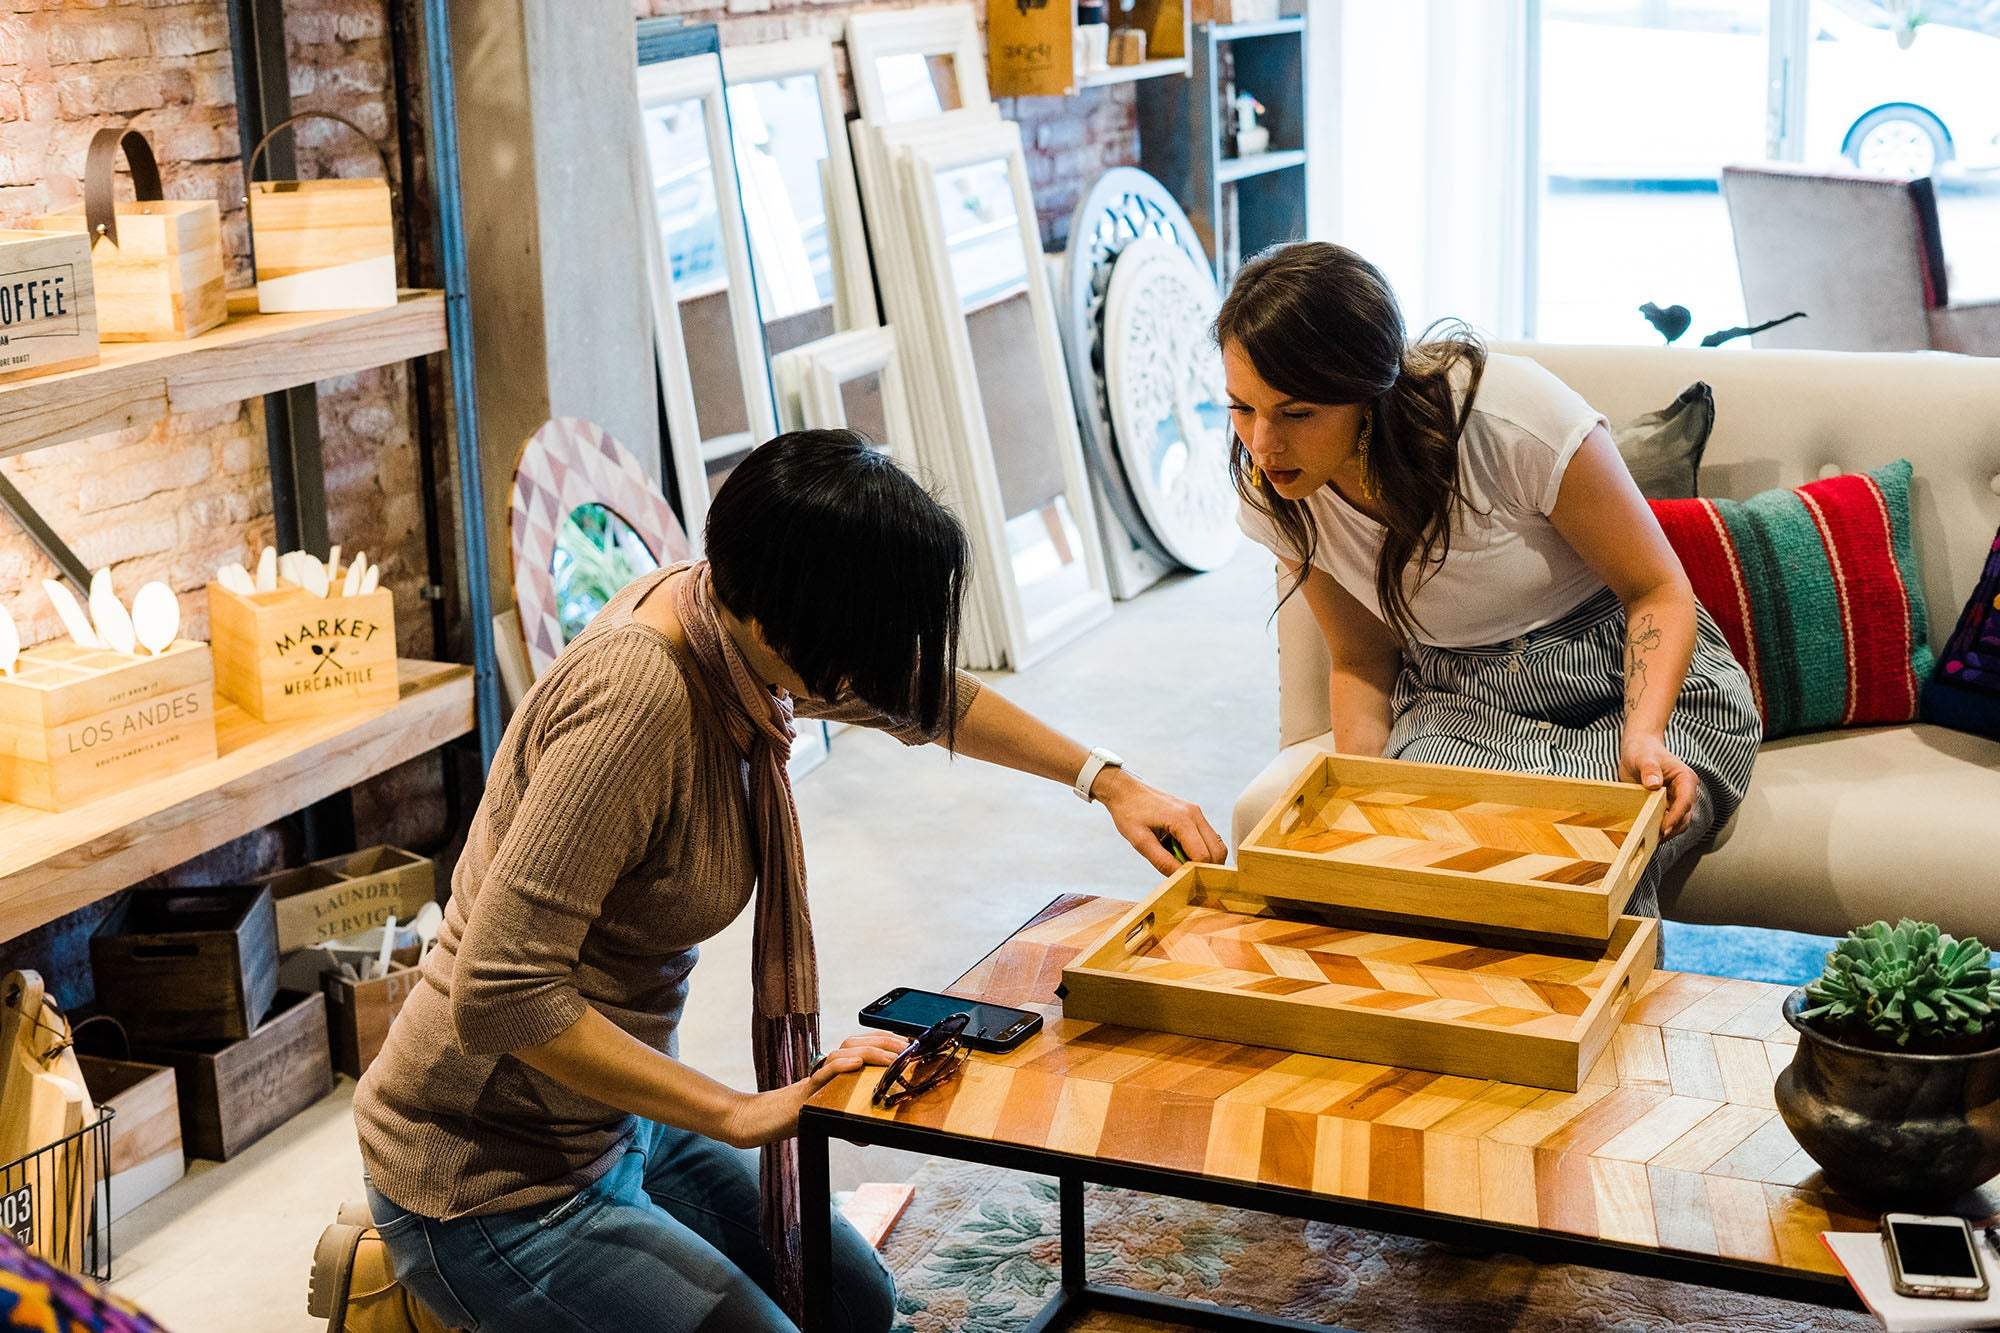 Kelsie and Eugenia consulting on wood mosaic design over wood mosaic trays and coffee table.